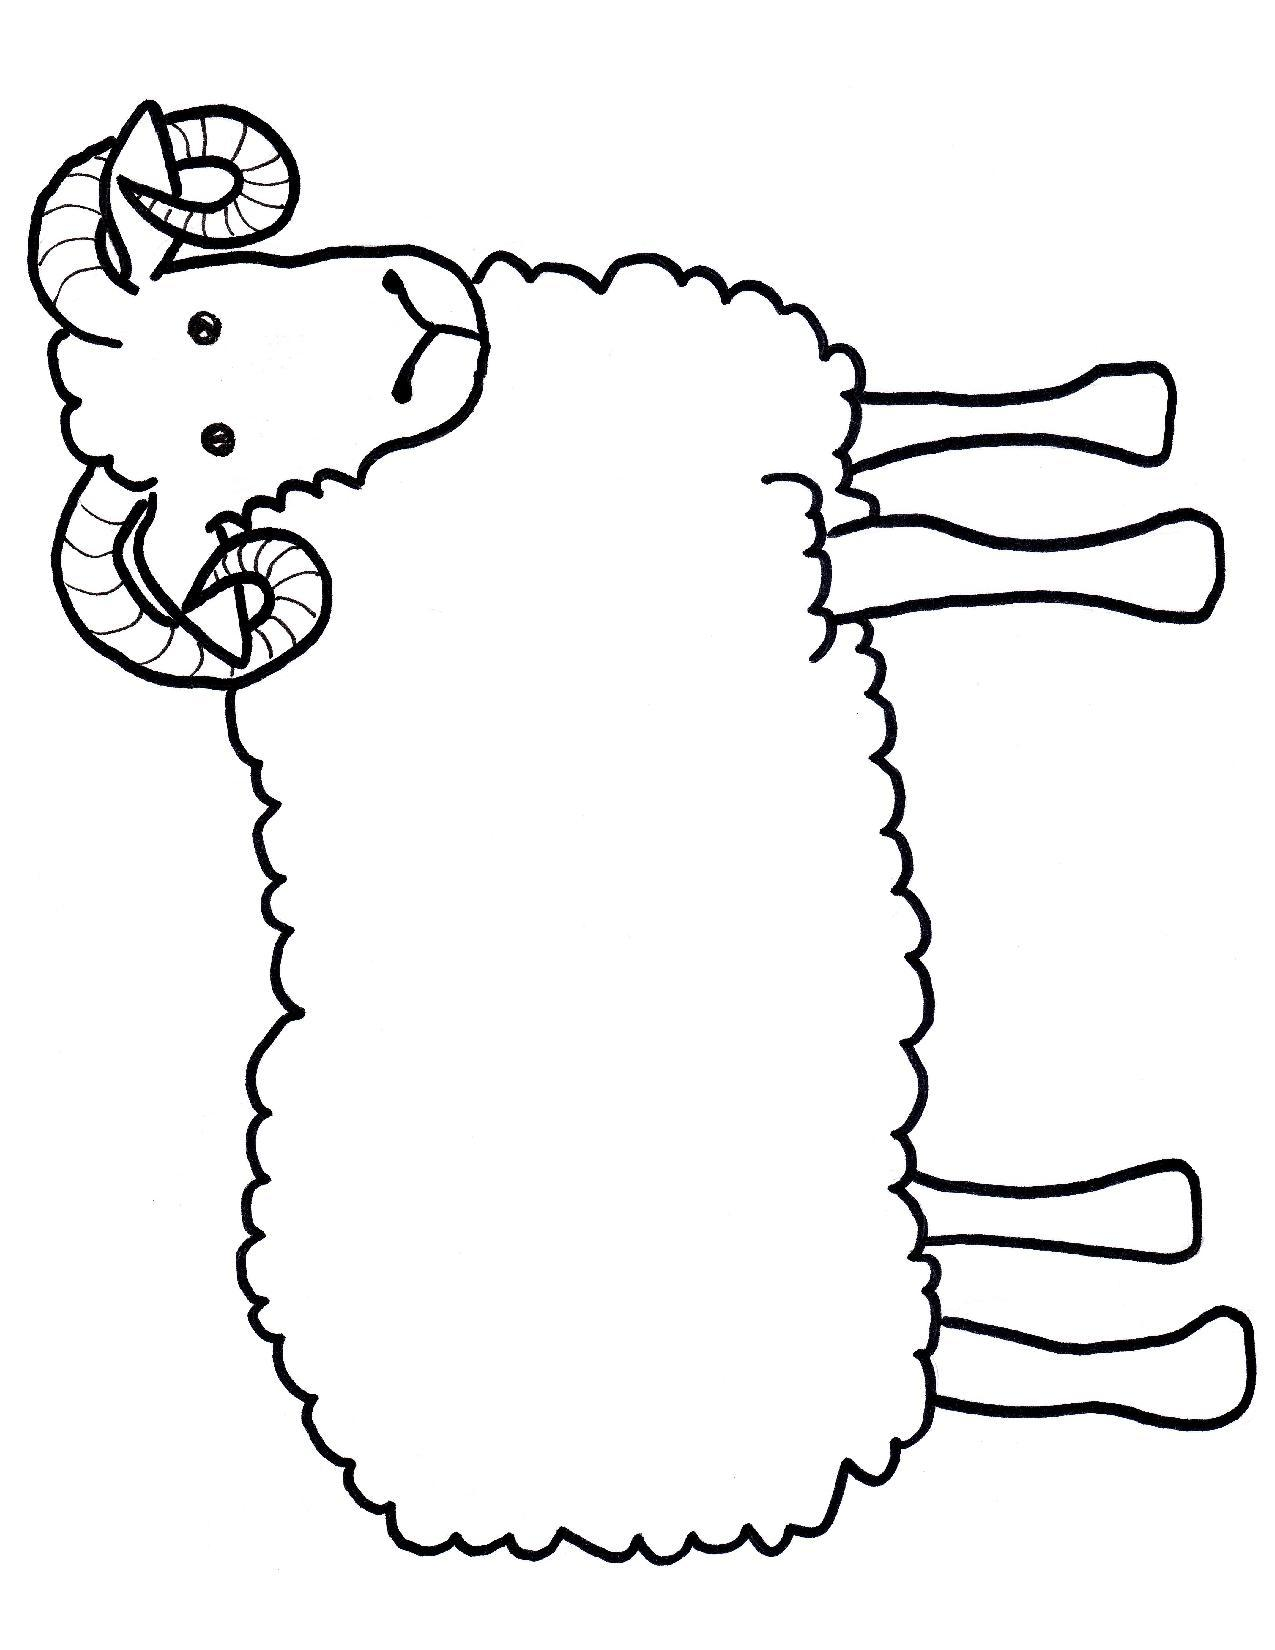 Free outline cliparts download. Lamb clipart template